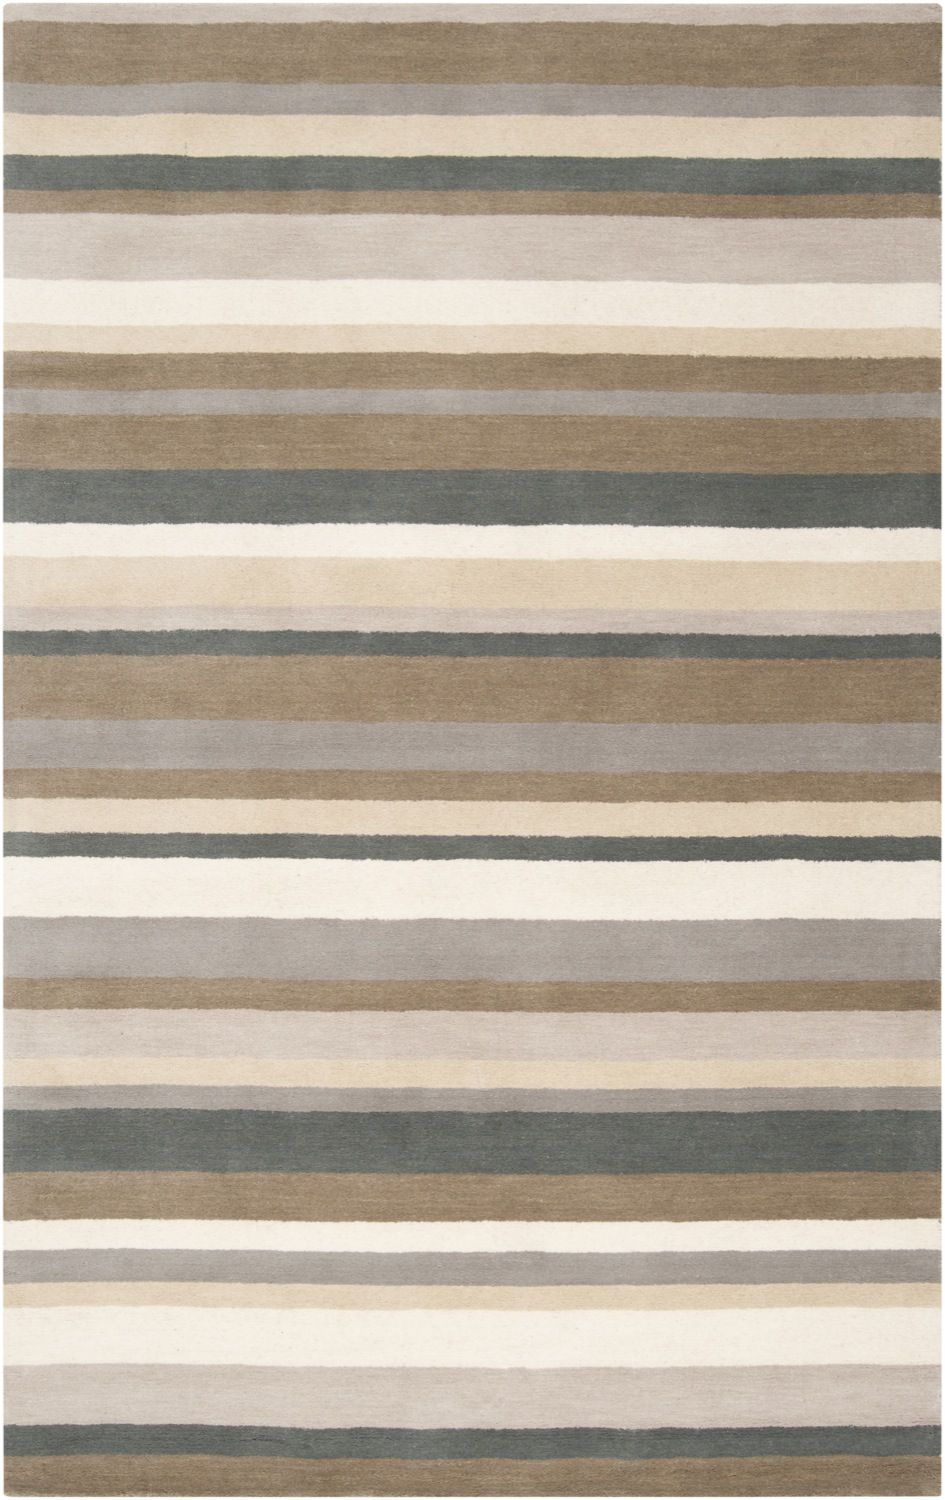 surya madison square solid/striped area rug collection